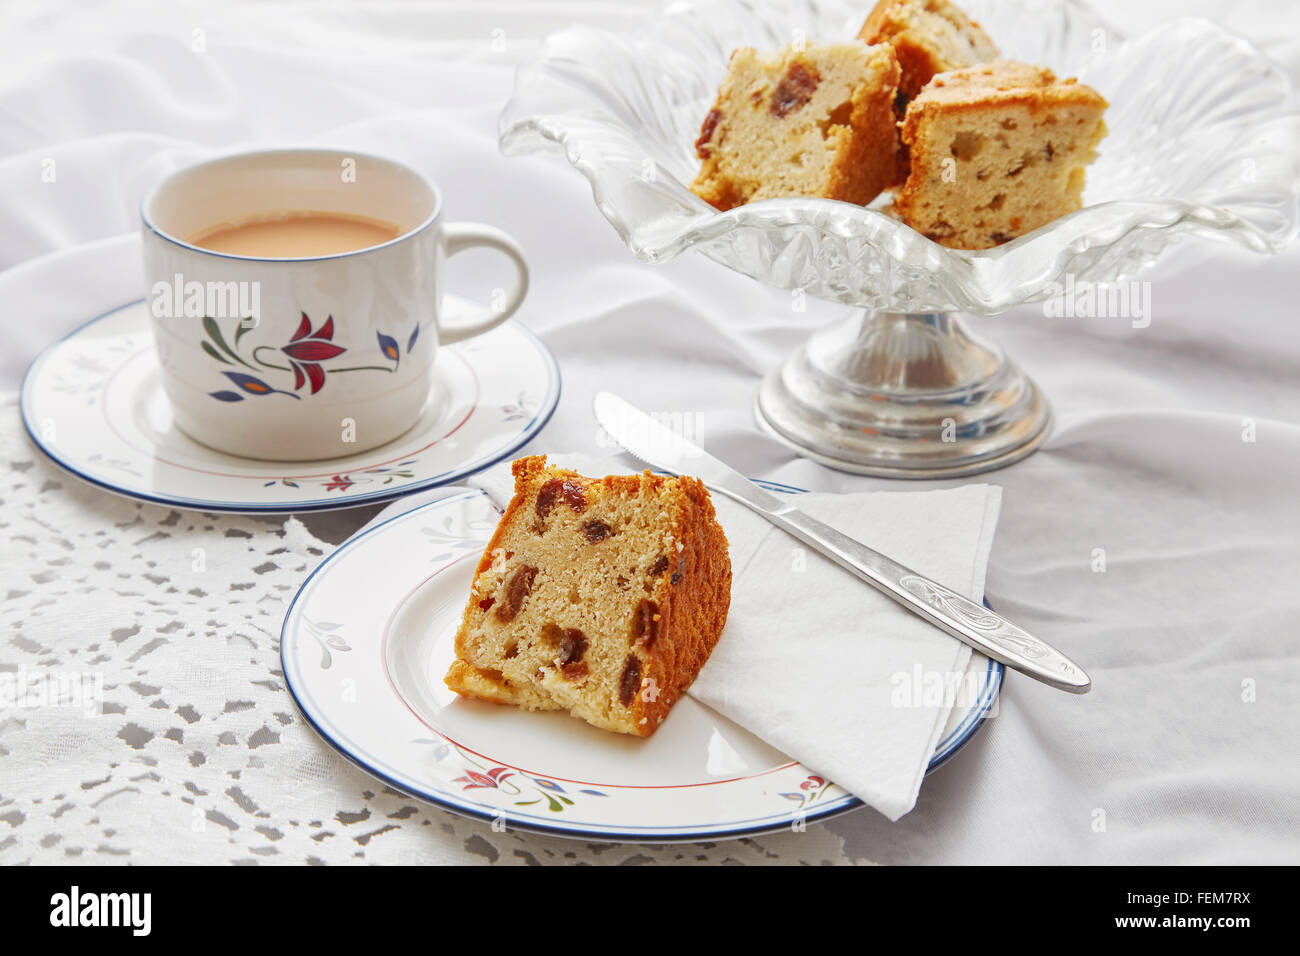 Traditional tea and cake in the UK. - Stock Image